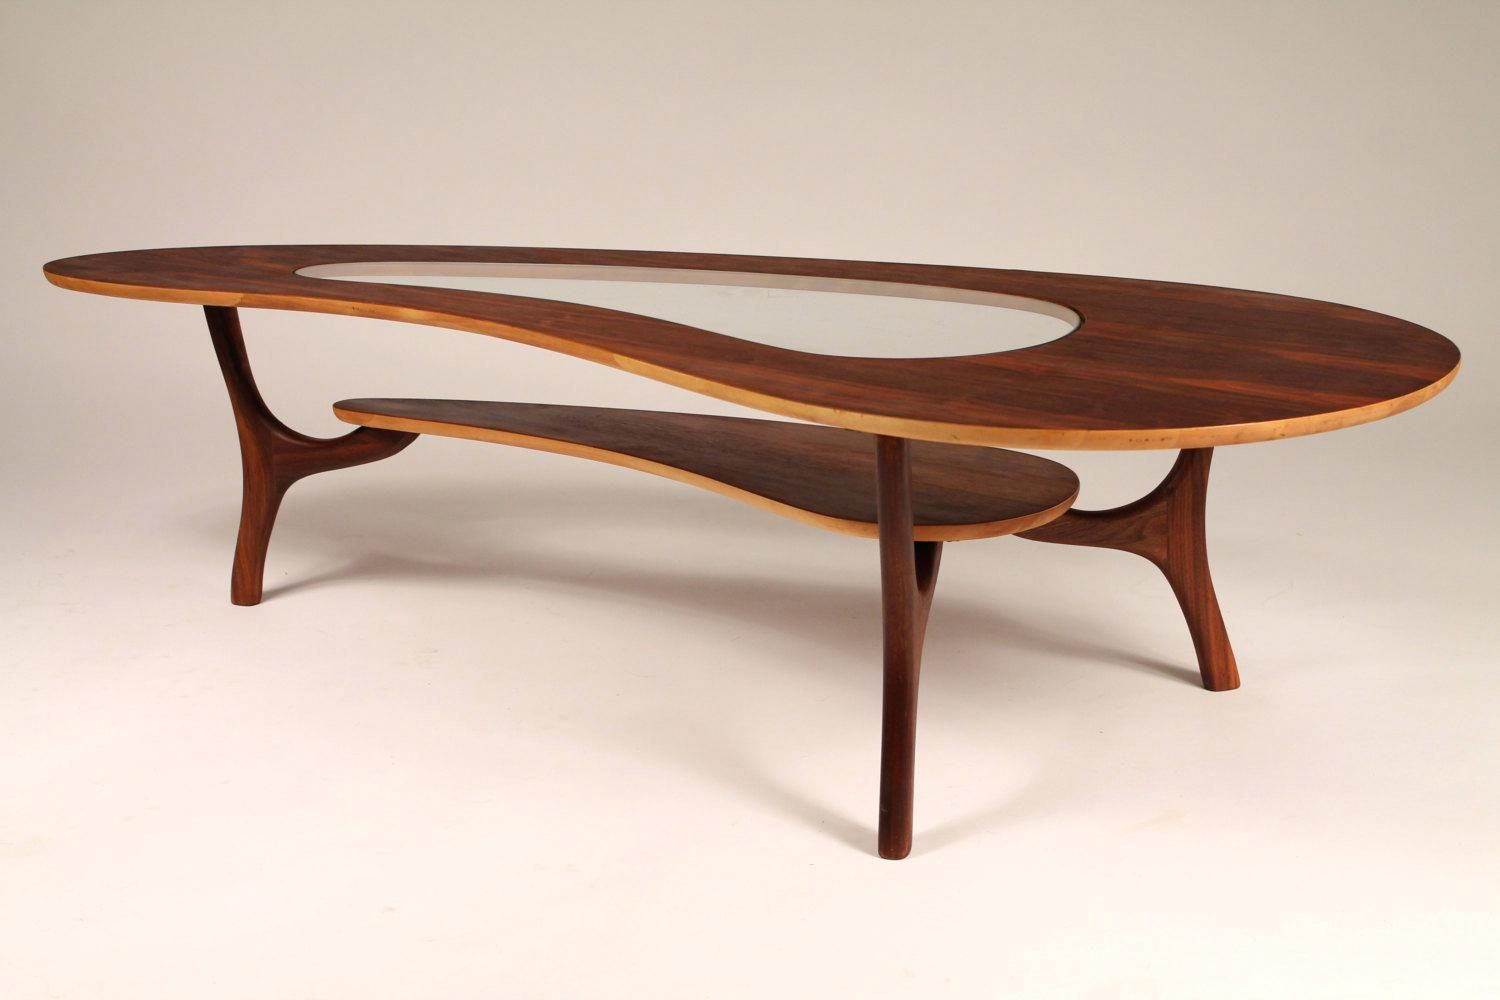 - Image Result For Kidney Shaped Coffee Table With Glass Insert